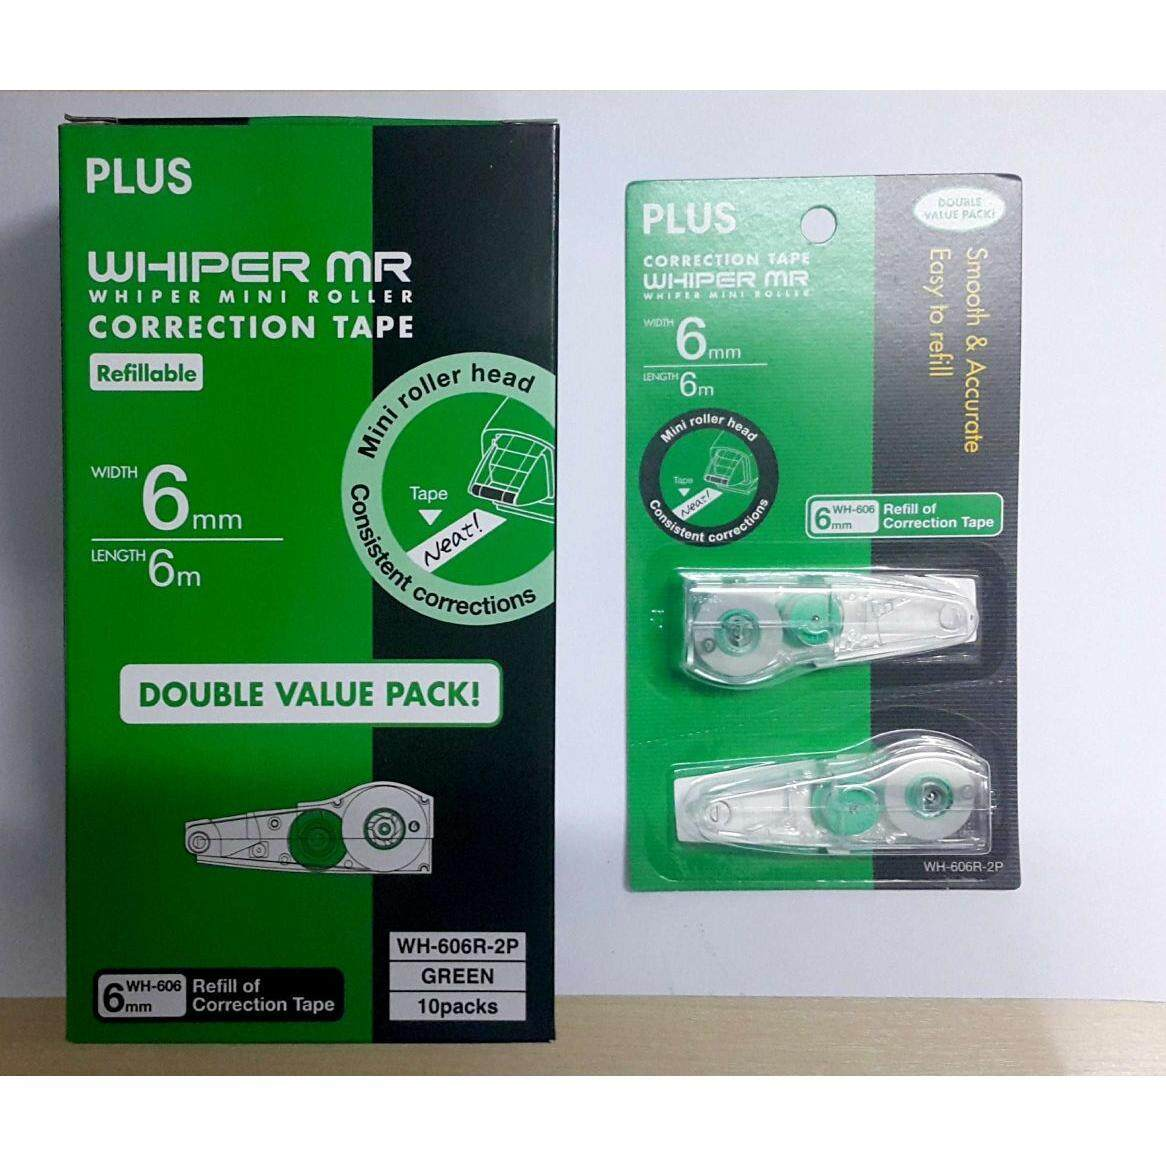 Plus Correction Tape Refill (wh-606r-2p) (box Of 10pcs) - Green By Ideal Stationery.